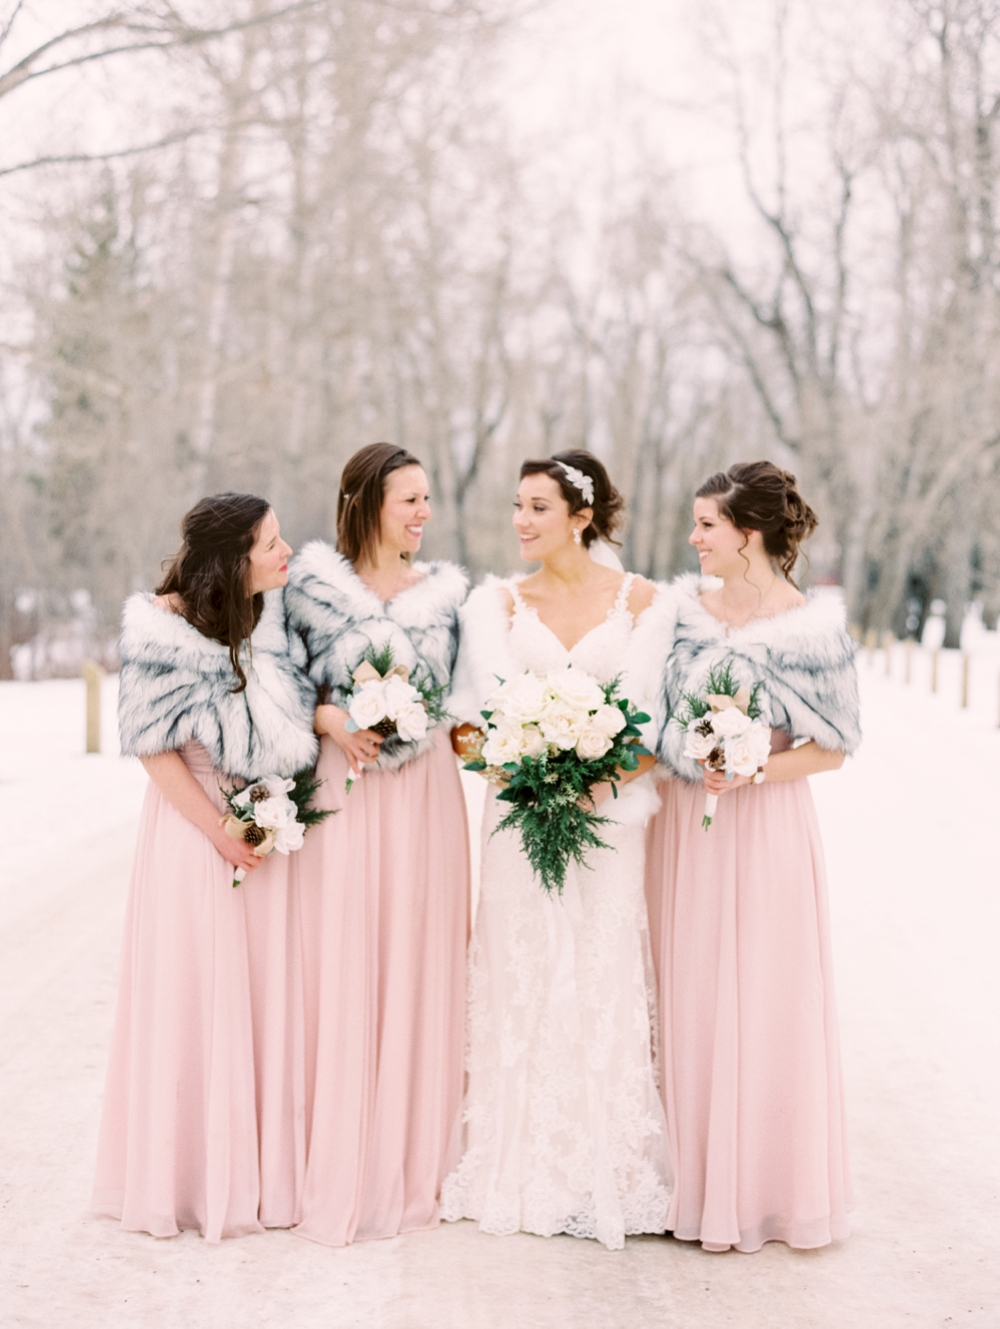 Winter wedding | Calgary wedding photographer | snowy weddings